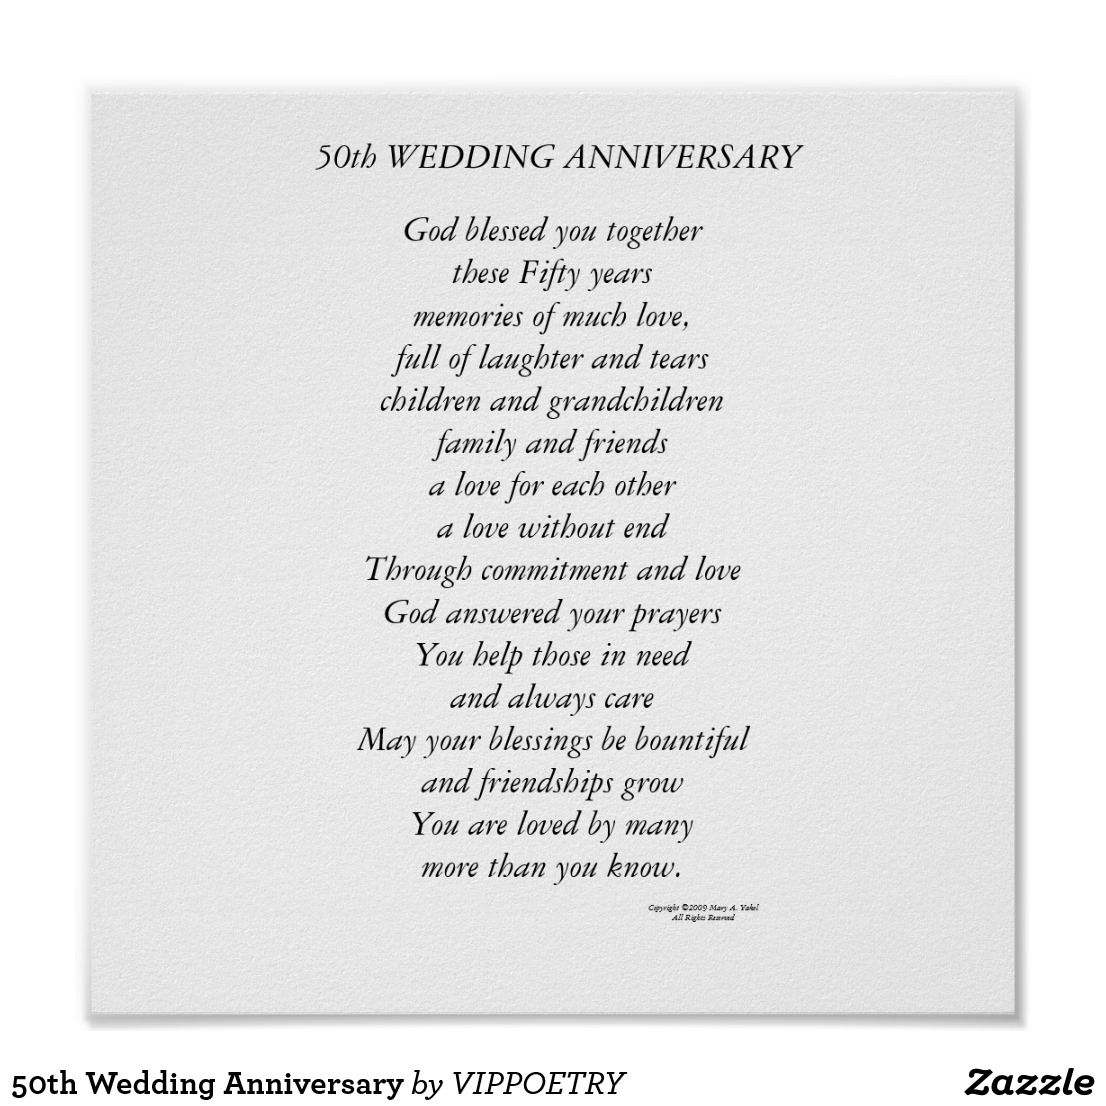 50th wedding anniversary poem